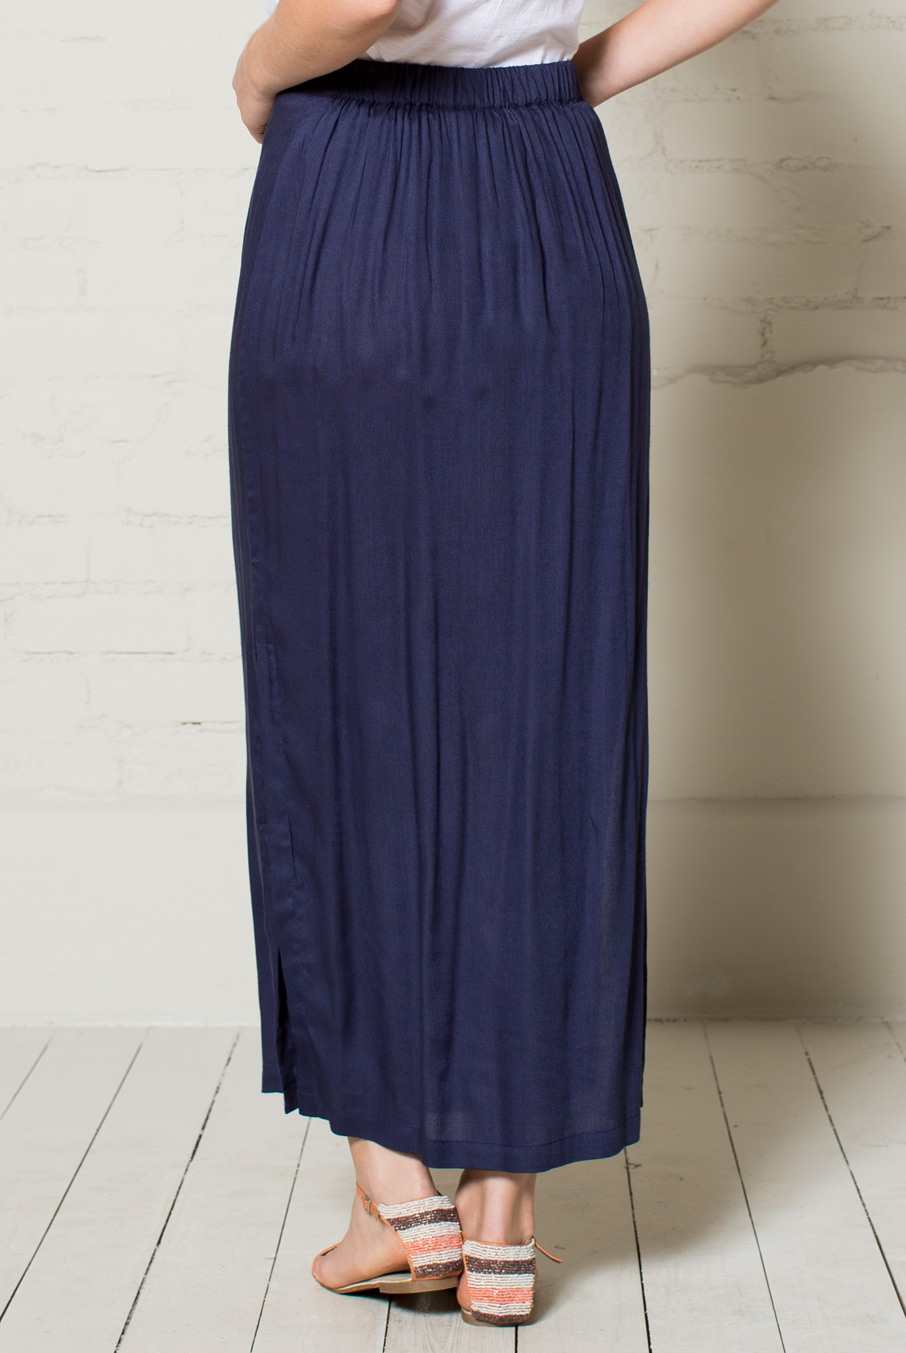 Nomads Clothing - Plain Maxi Skirt